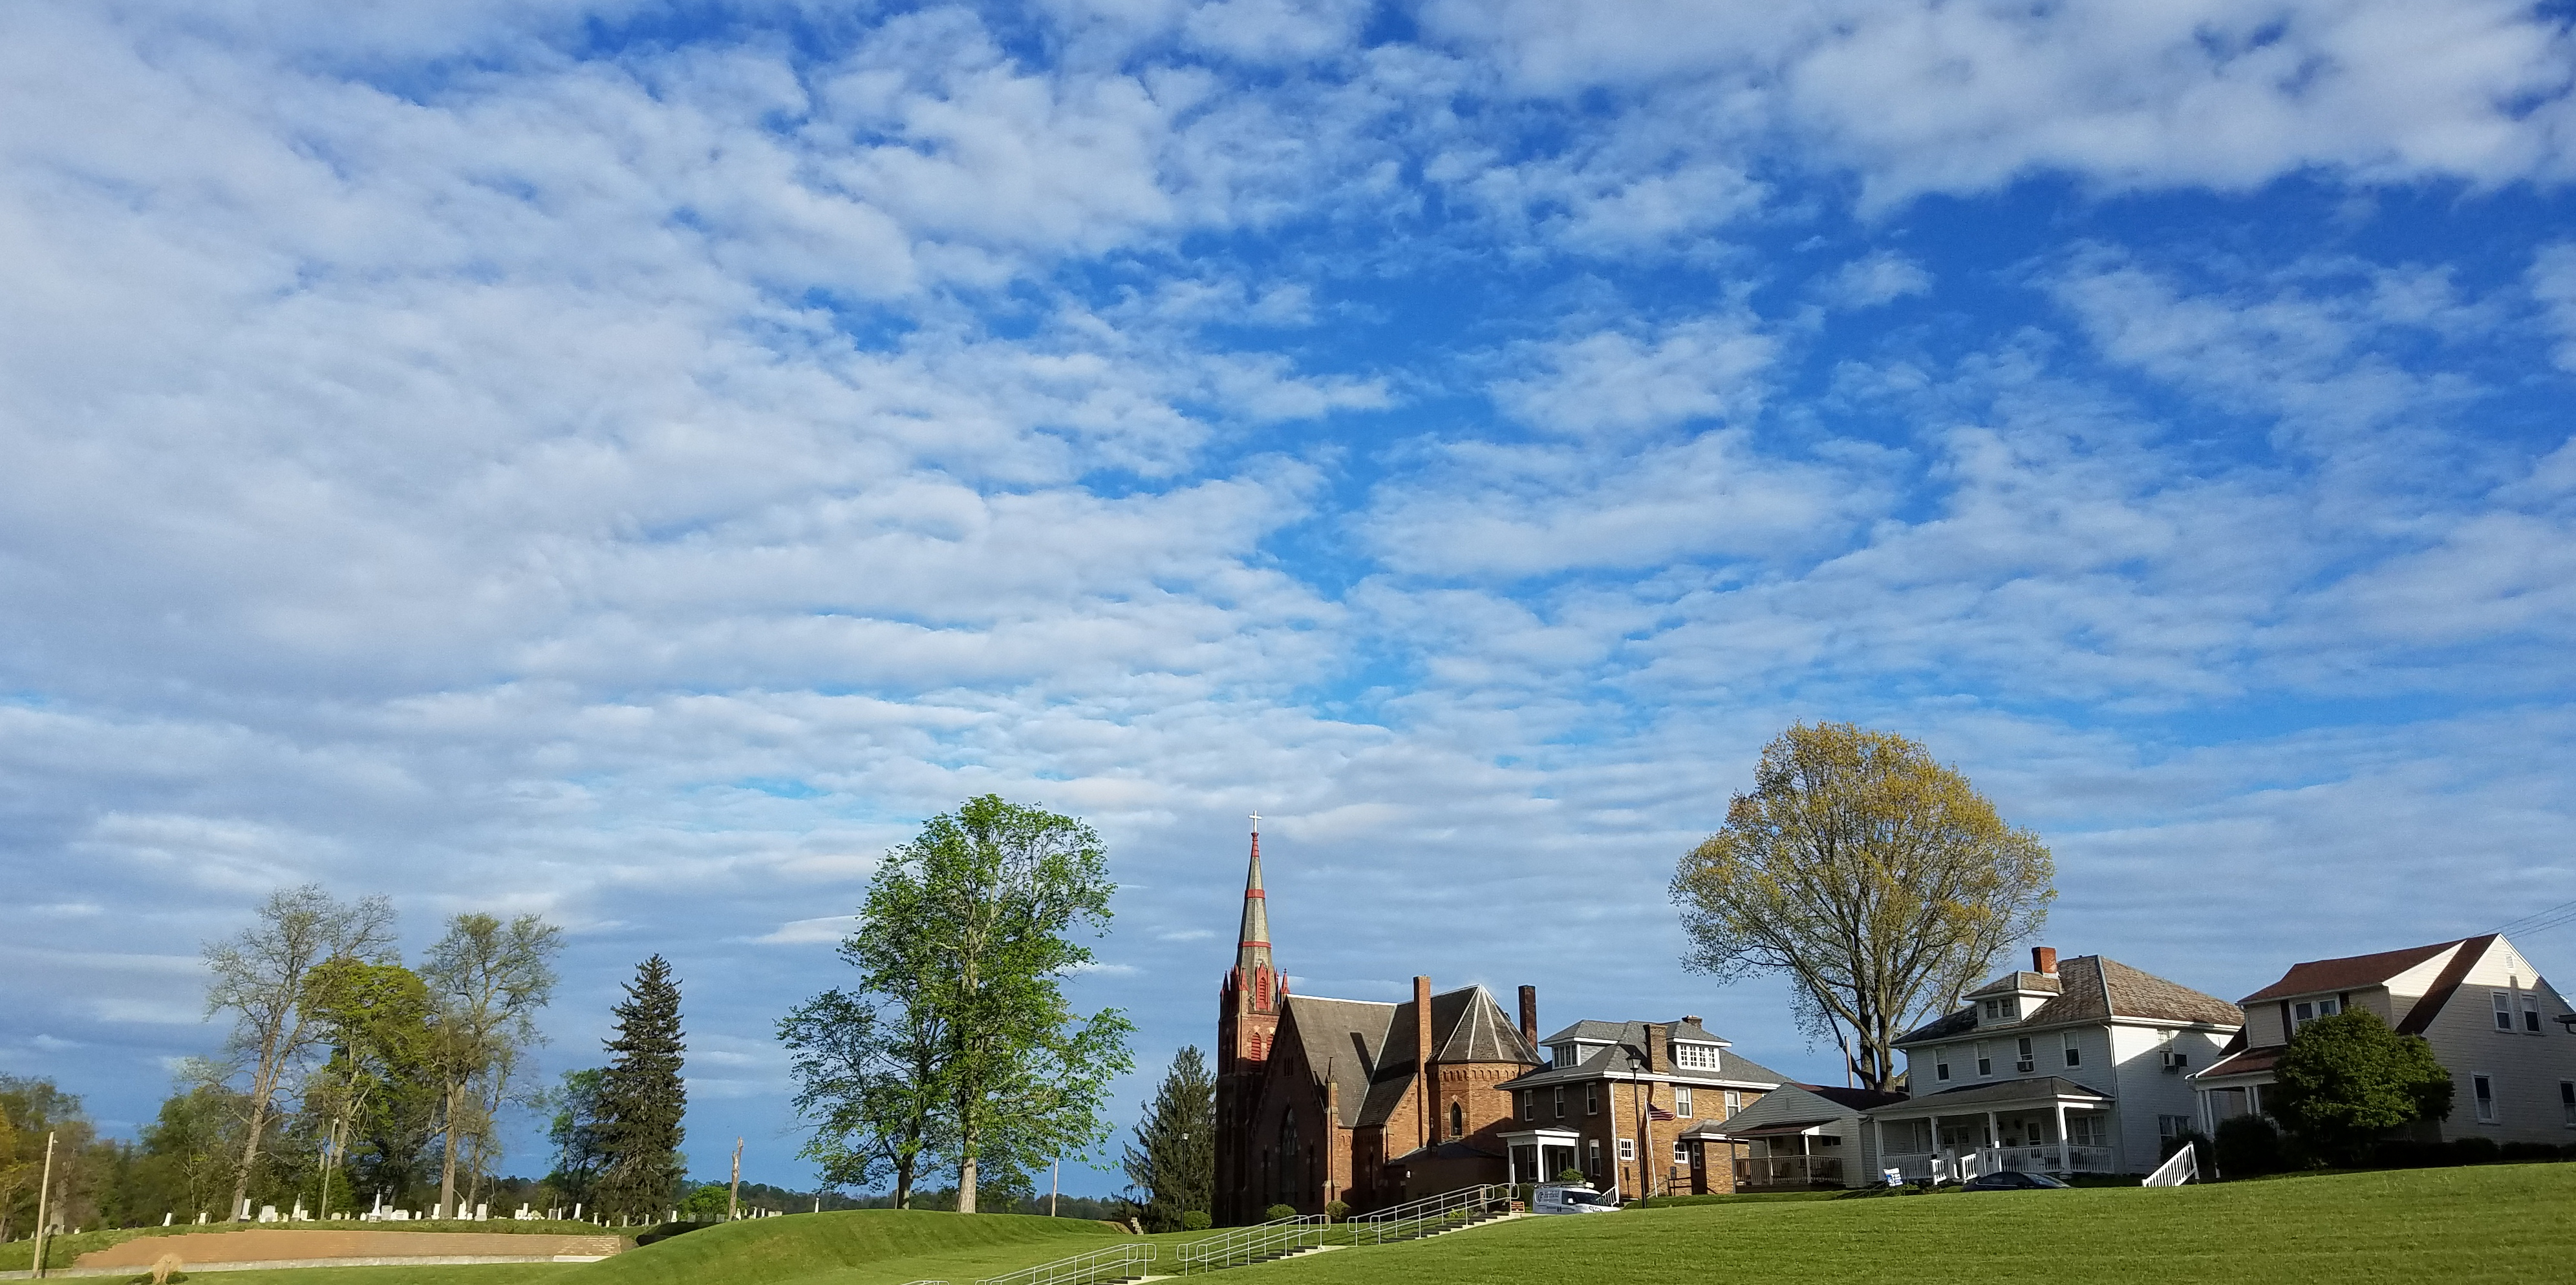 St. John Catholic Church, Appalachia, Clouds, Cross, Hills, HQ Photo